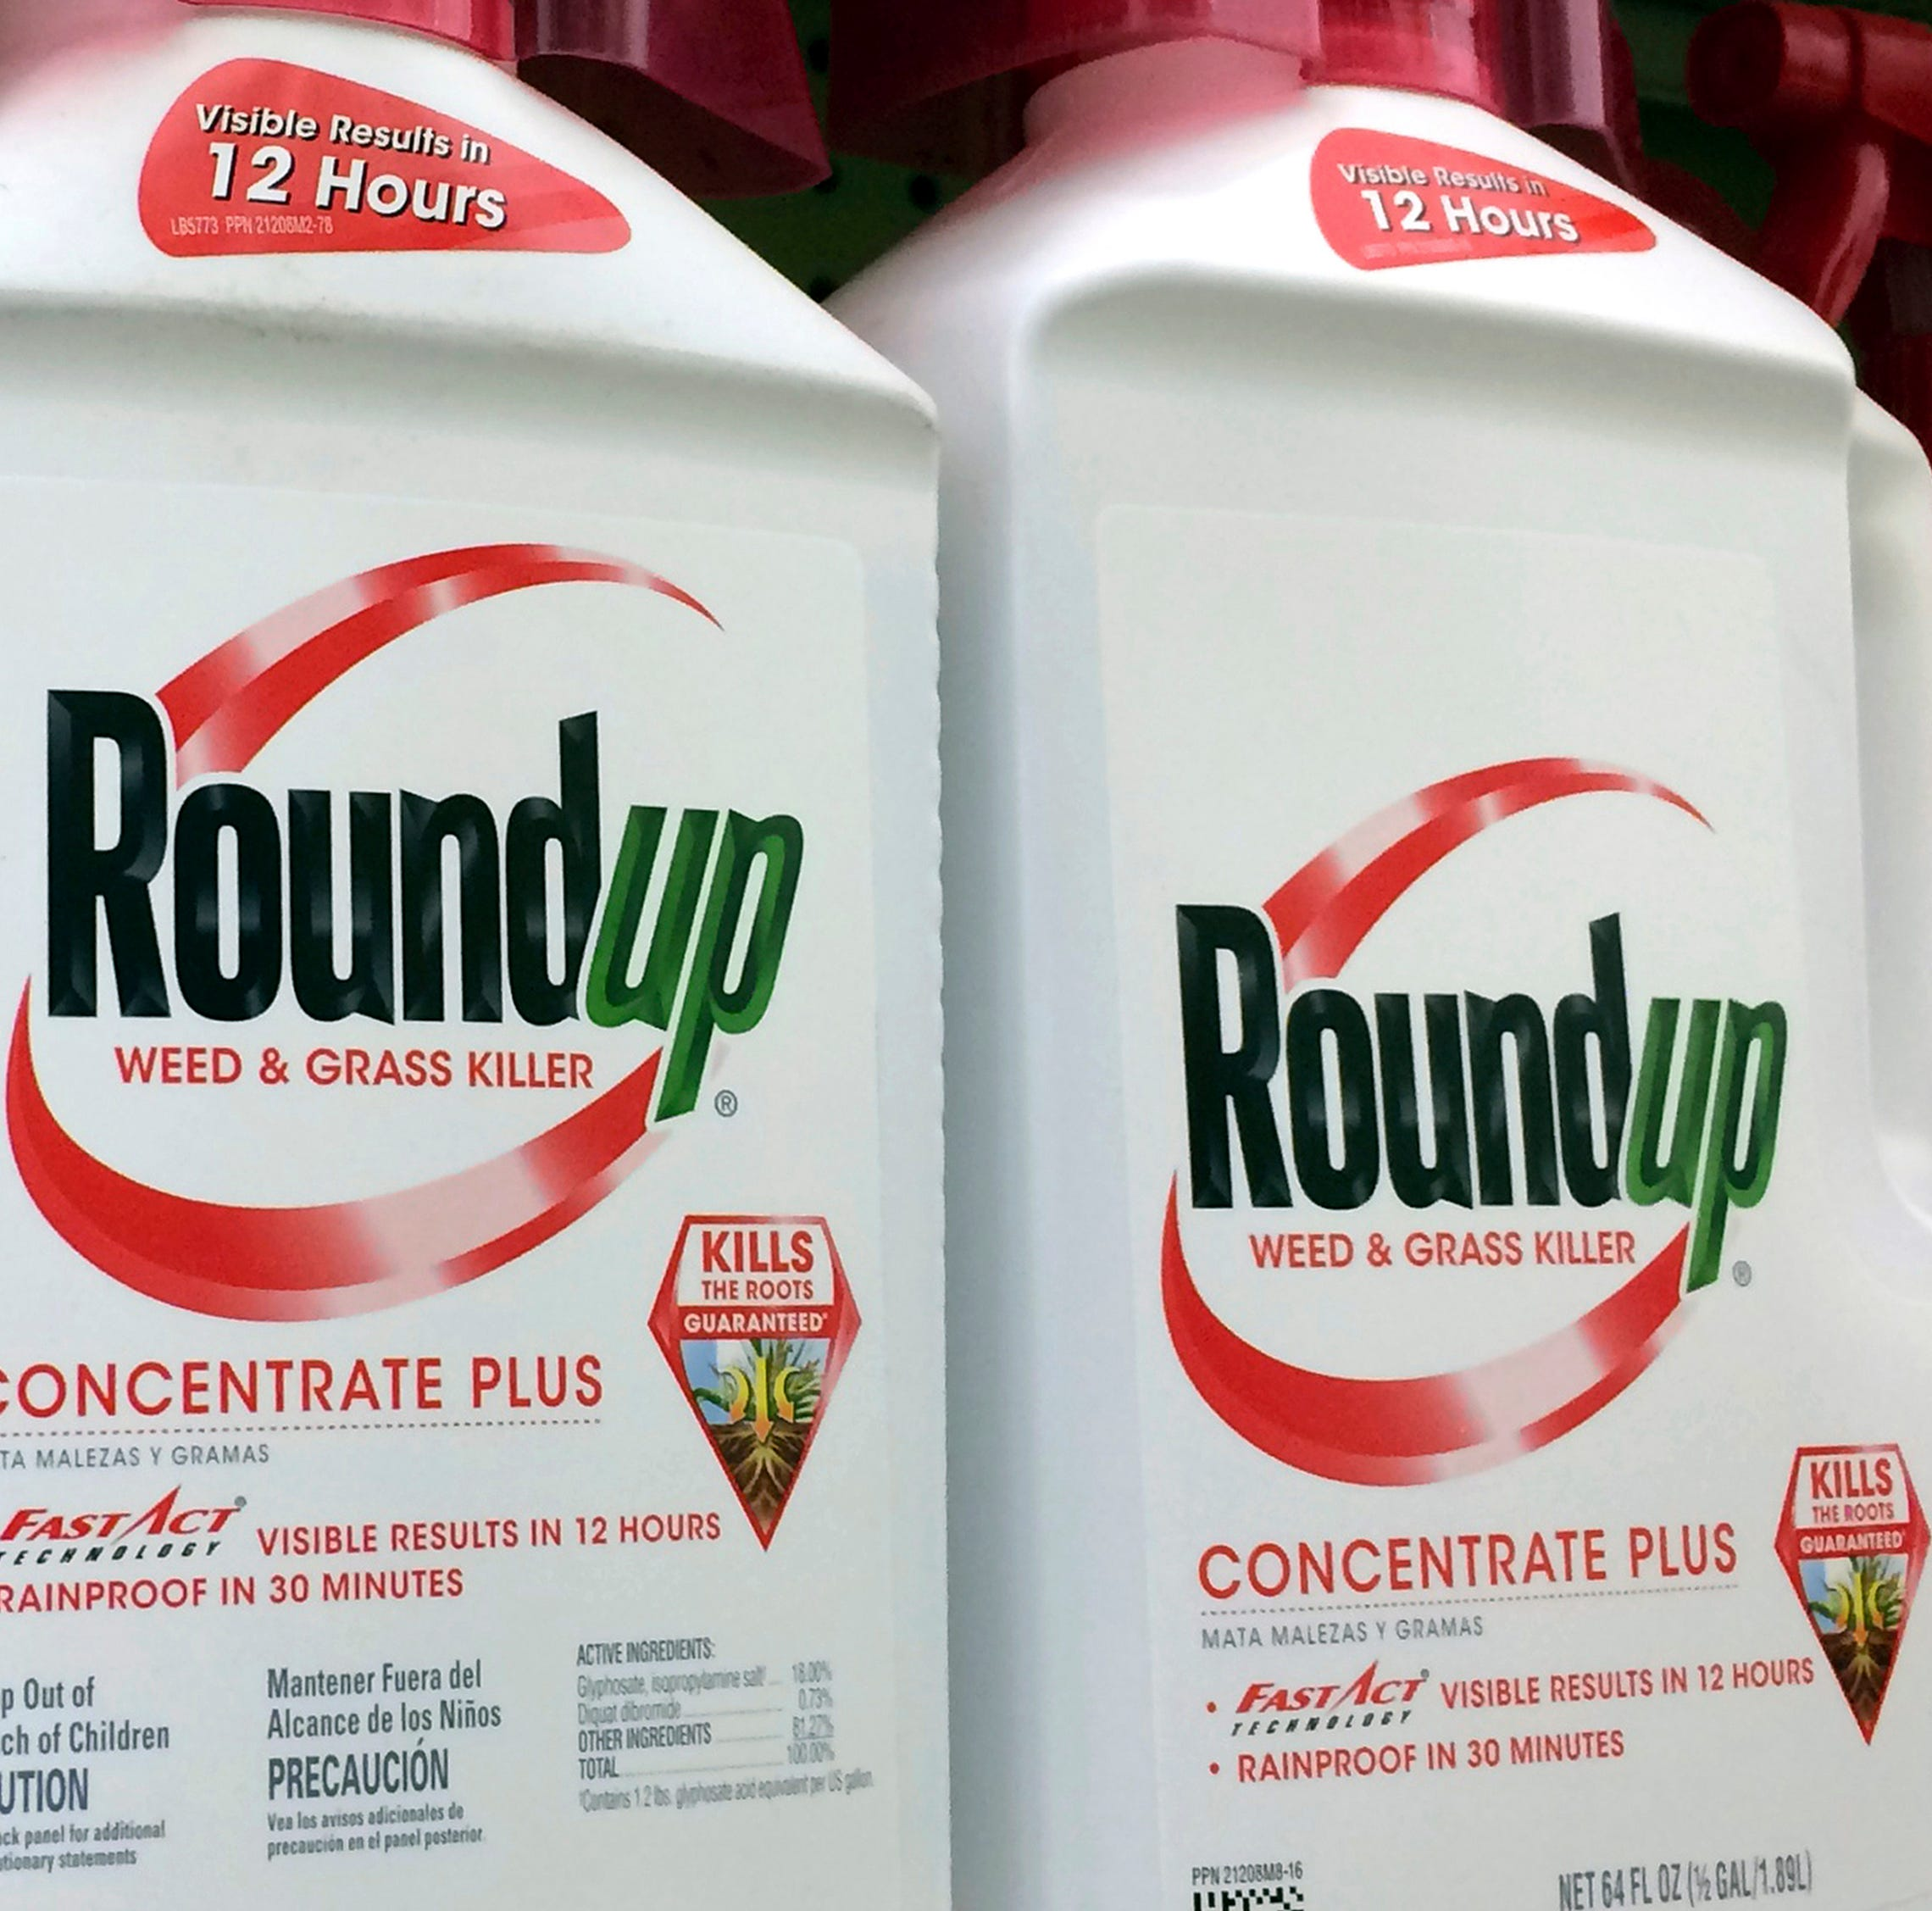 California jury orders Monsanto to pay $2 billion to couple who says Roundup caused cancer